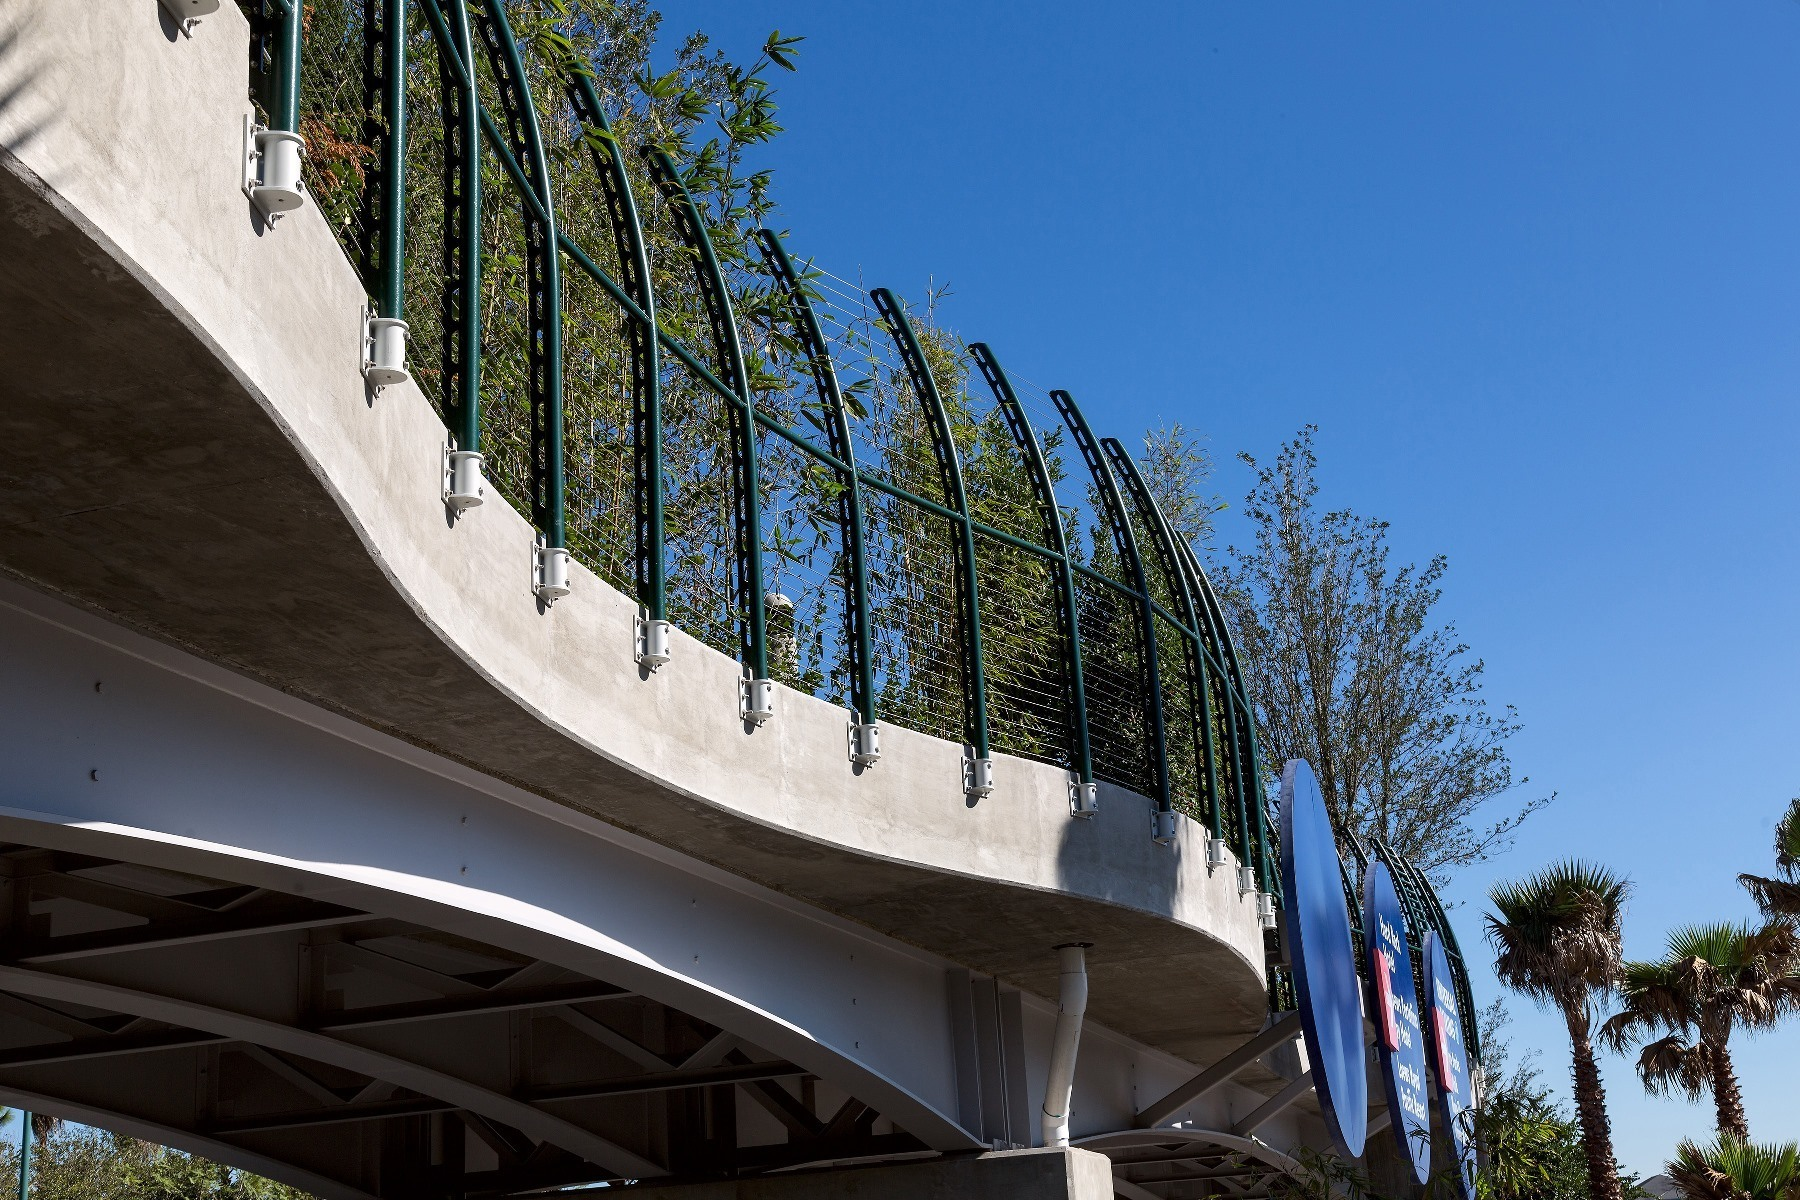 Pedestrian Bridge Curves Along Path